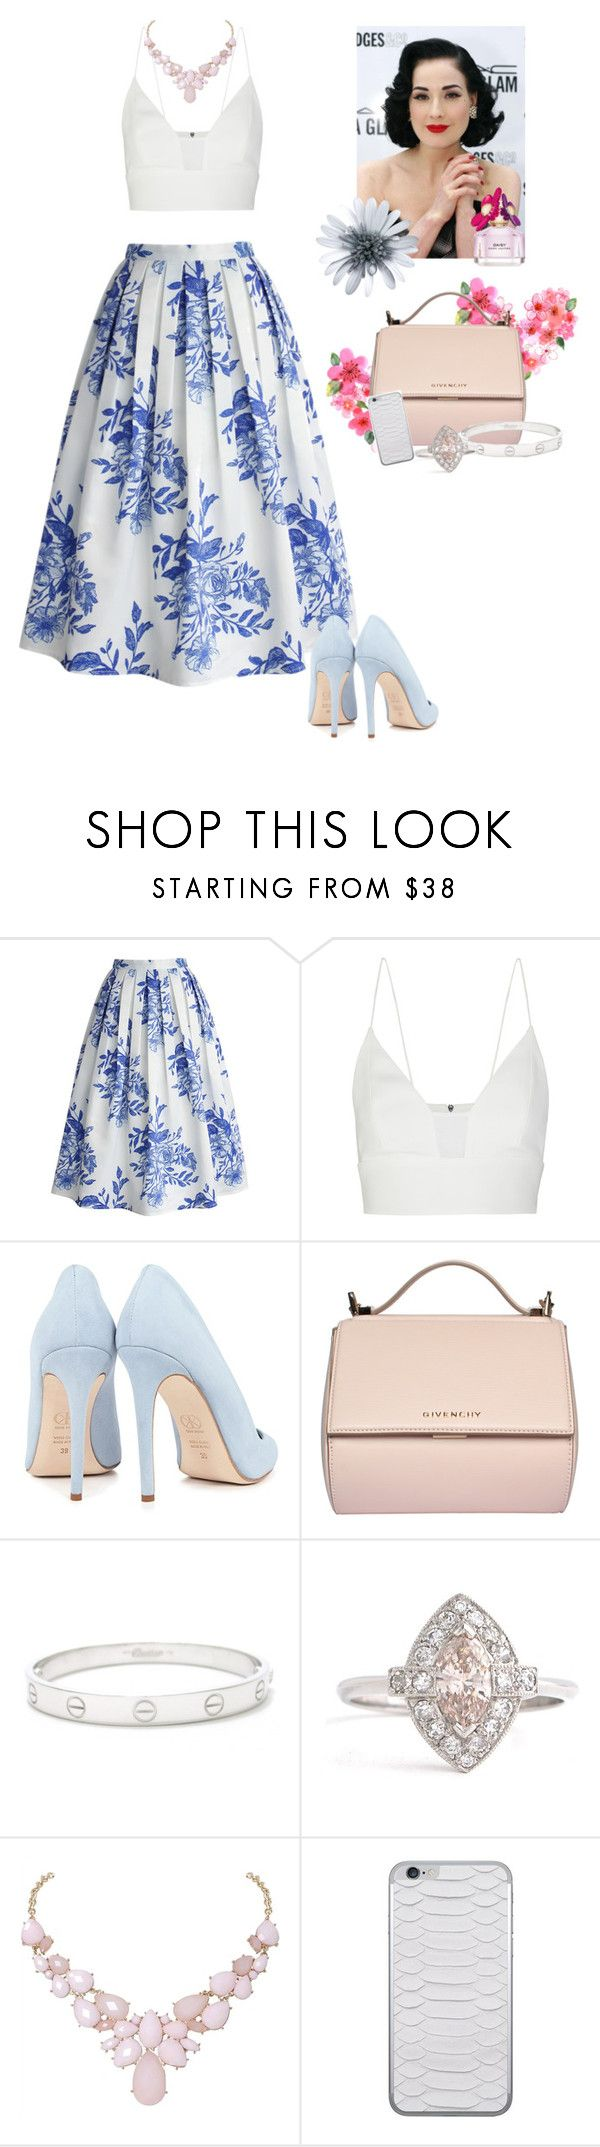 """""""The lady of the flower skirt"""" by rafa-vieira ❤ liked on Polyvore featuring Chicwish, Narciso Rodriguez, Dita Von Teese, Dee Keller, Givenchy, Cartier, Humble Chic, Jamie Clawson and Marc Jacobs"""